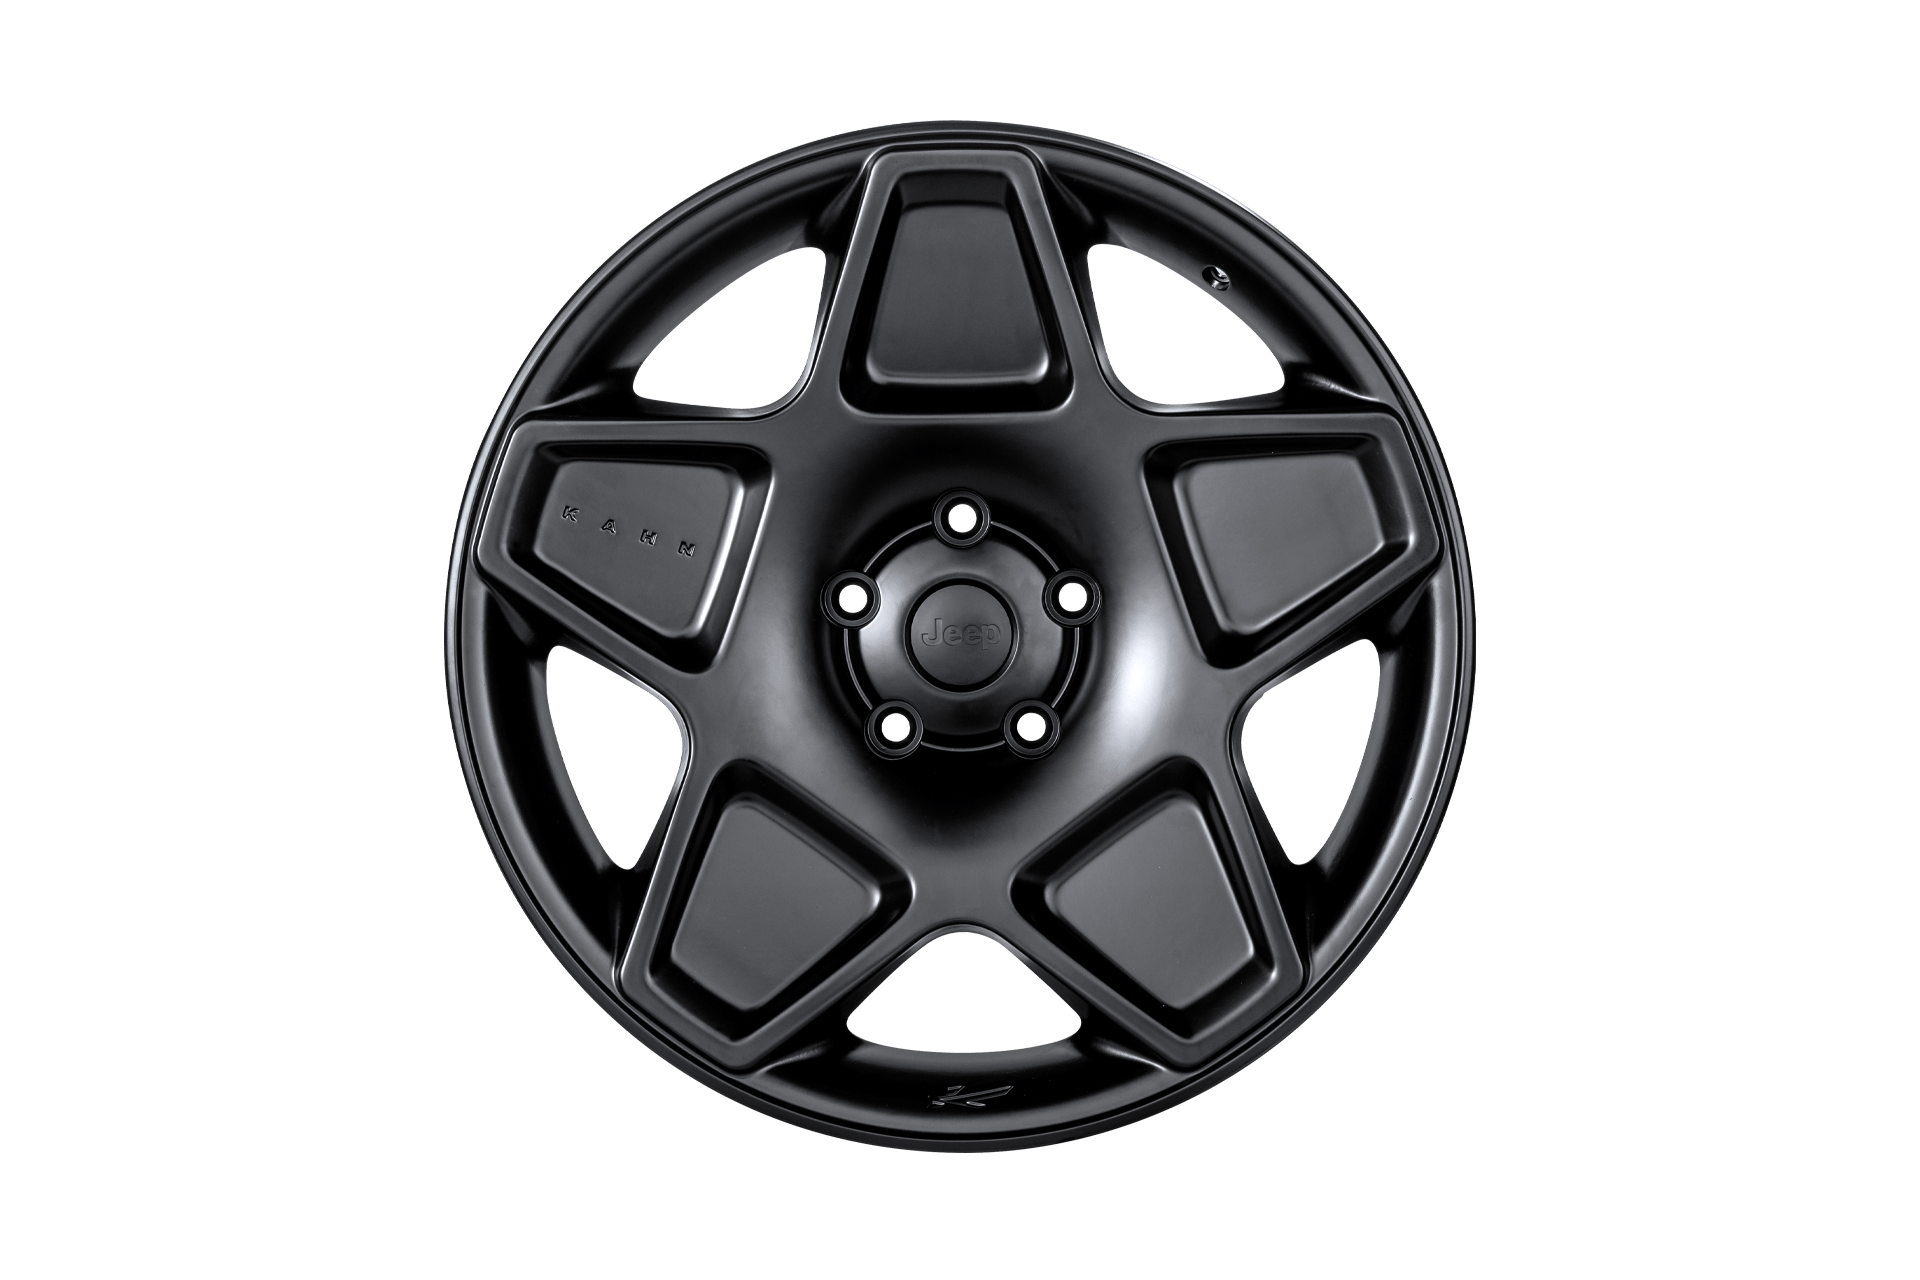 Jeep Wrangler Jl (2018-Present) Mondial Retro Light Alloy Wheels by Chelsea Truck Company - Image 3026